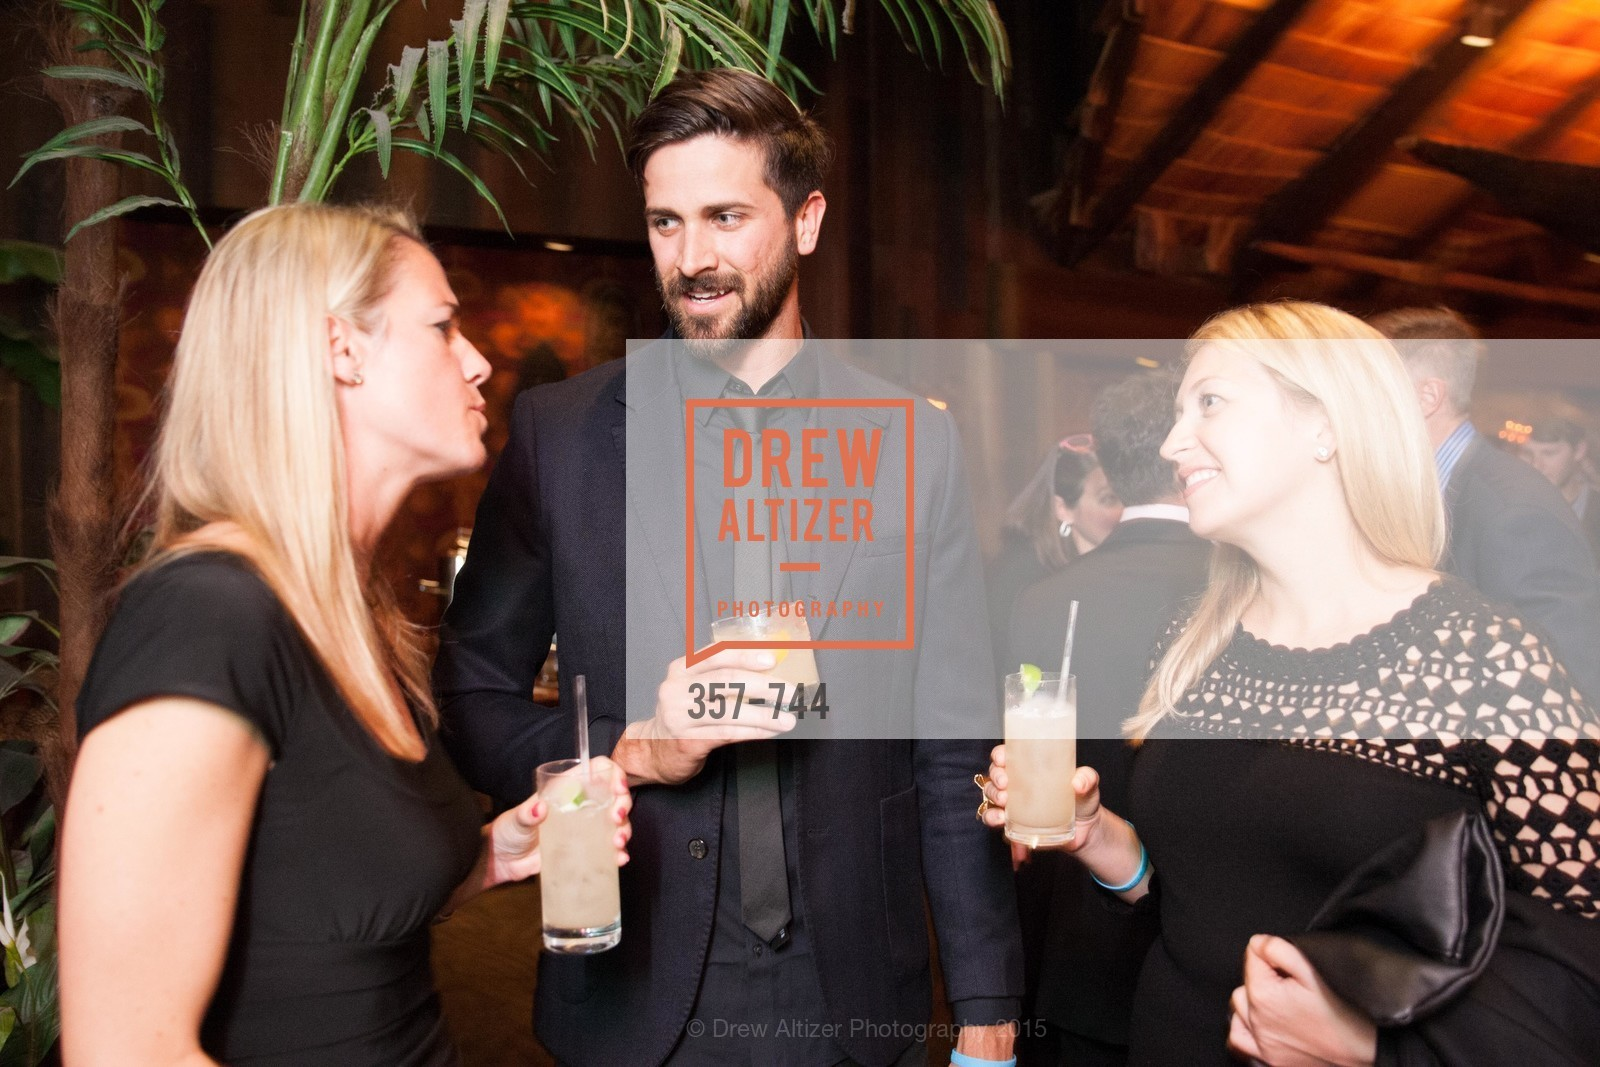 Extras, Celebration of Launch of SHYP in Los Angeles, May 21st, 2015, Photo,Drew Altizer, Drew Altizer Photography, full-service event agency, private events, San Francisco photographer, photographer California